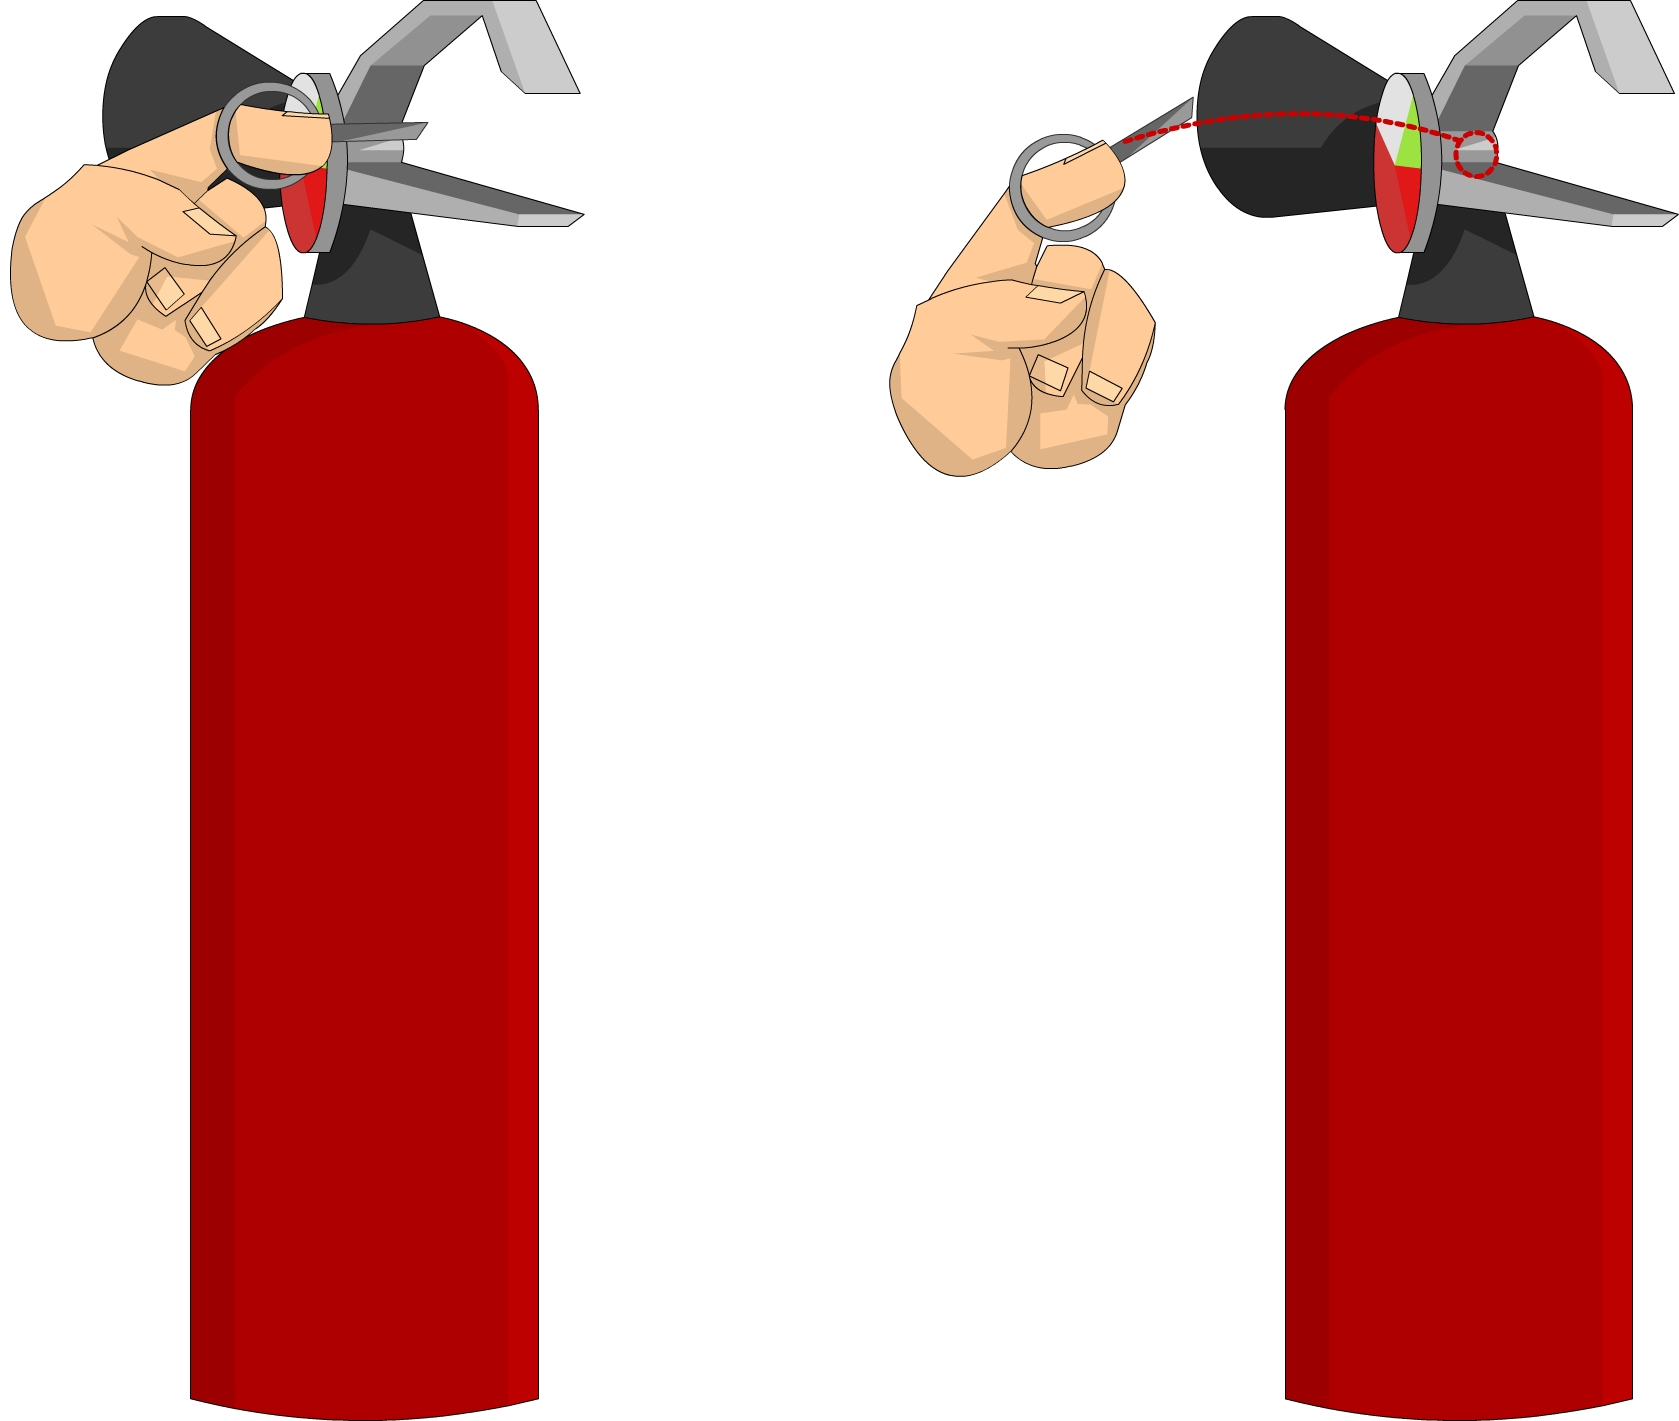 Fire extinguisher - Pull pin